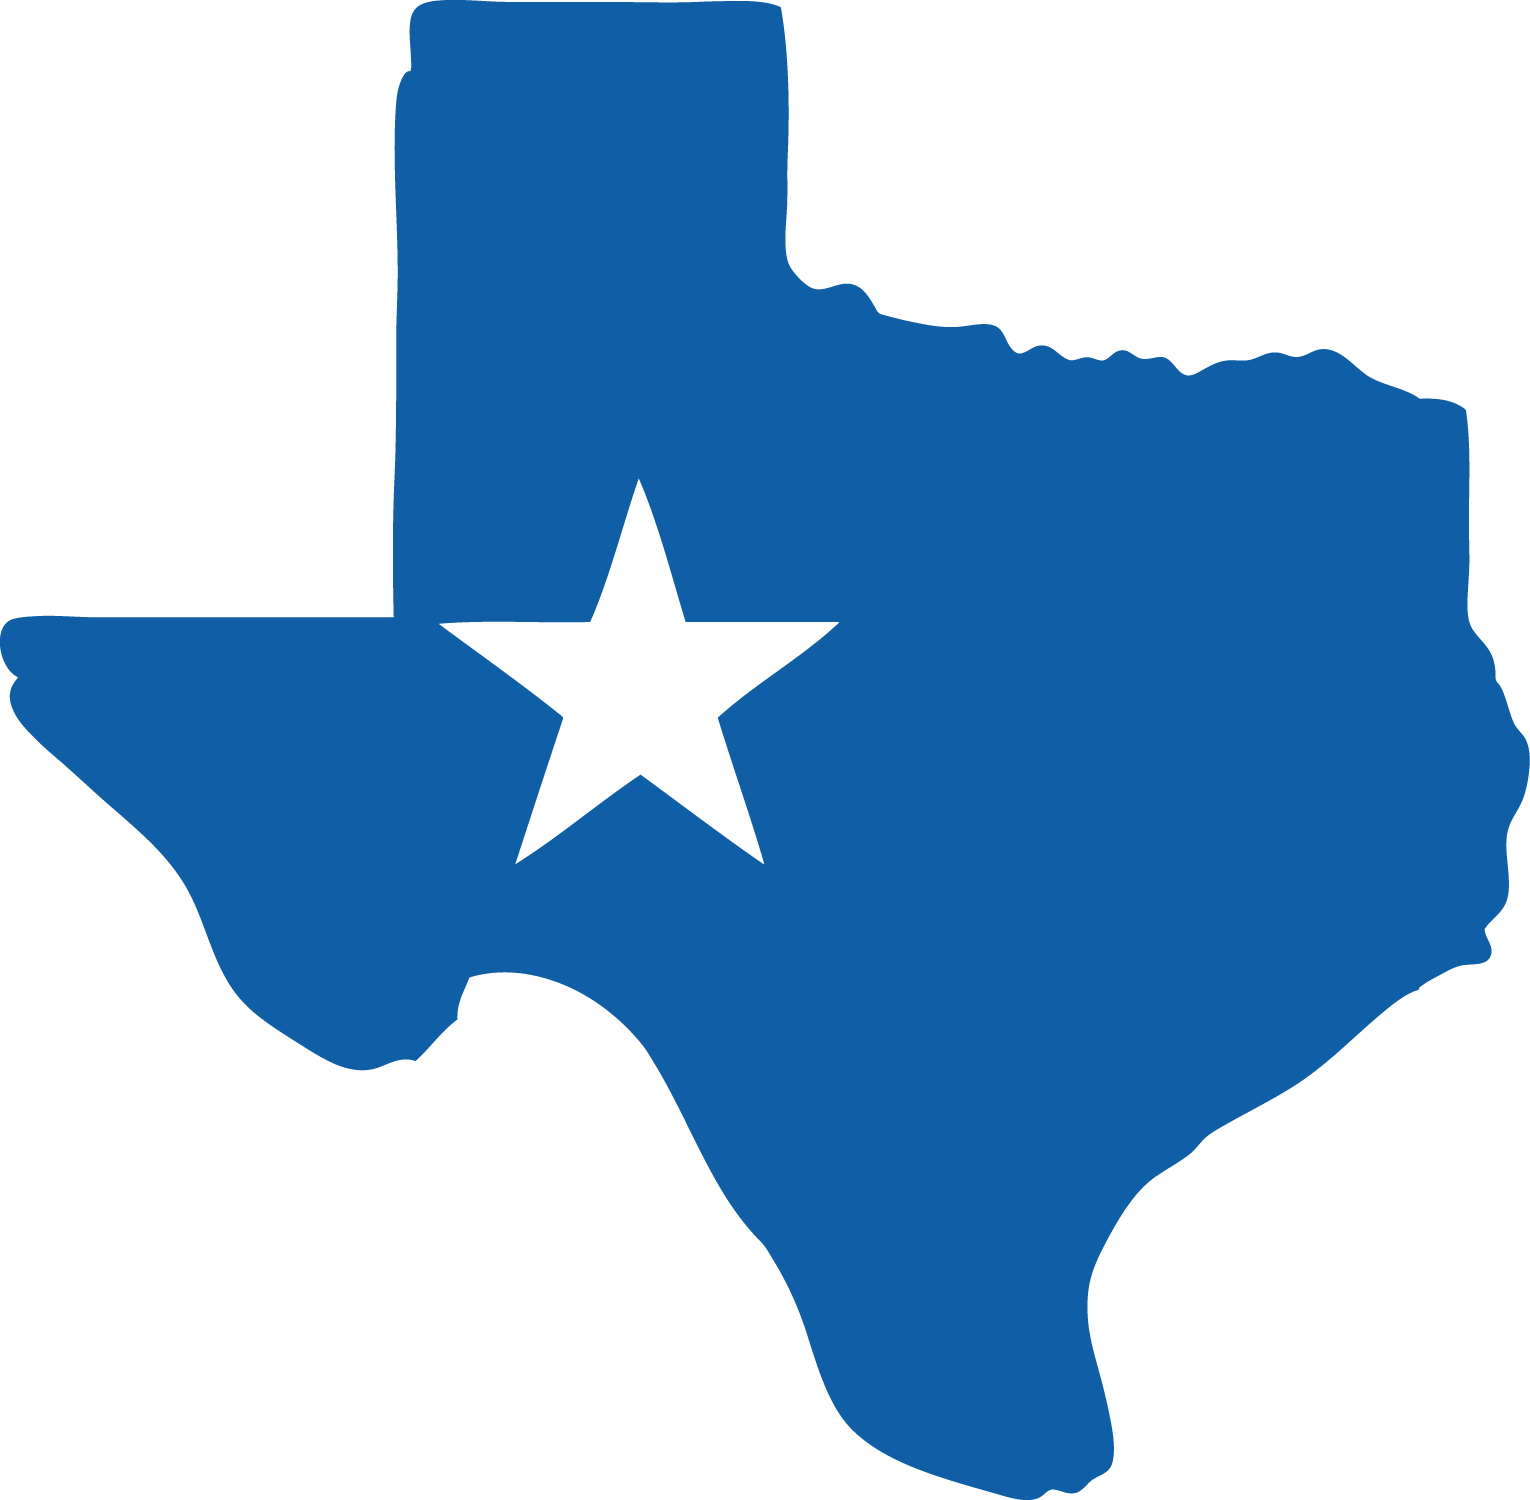 Texas back the blue cliparts clip art free library Free Outline Of The State Of Texas, Download Free Clip Art ... clip art free library